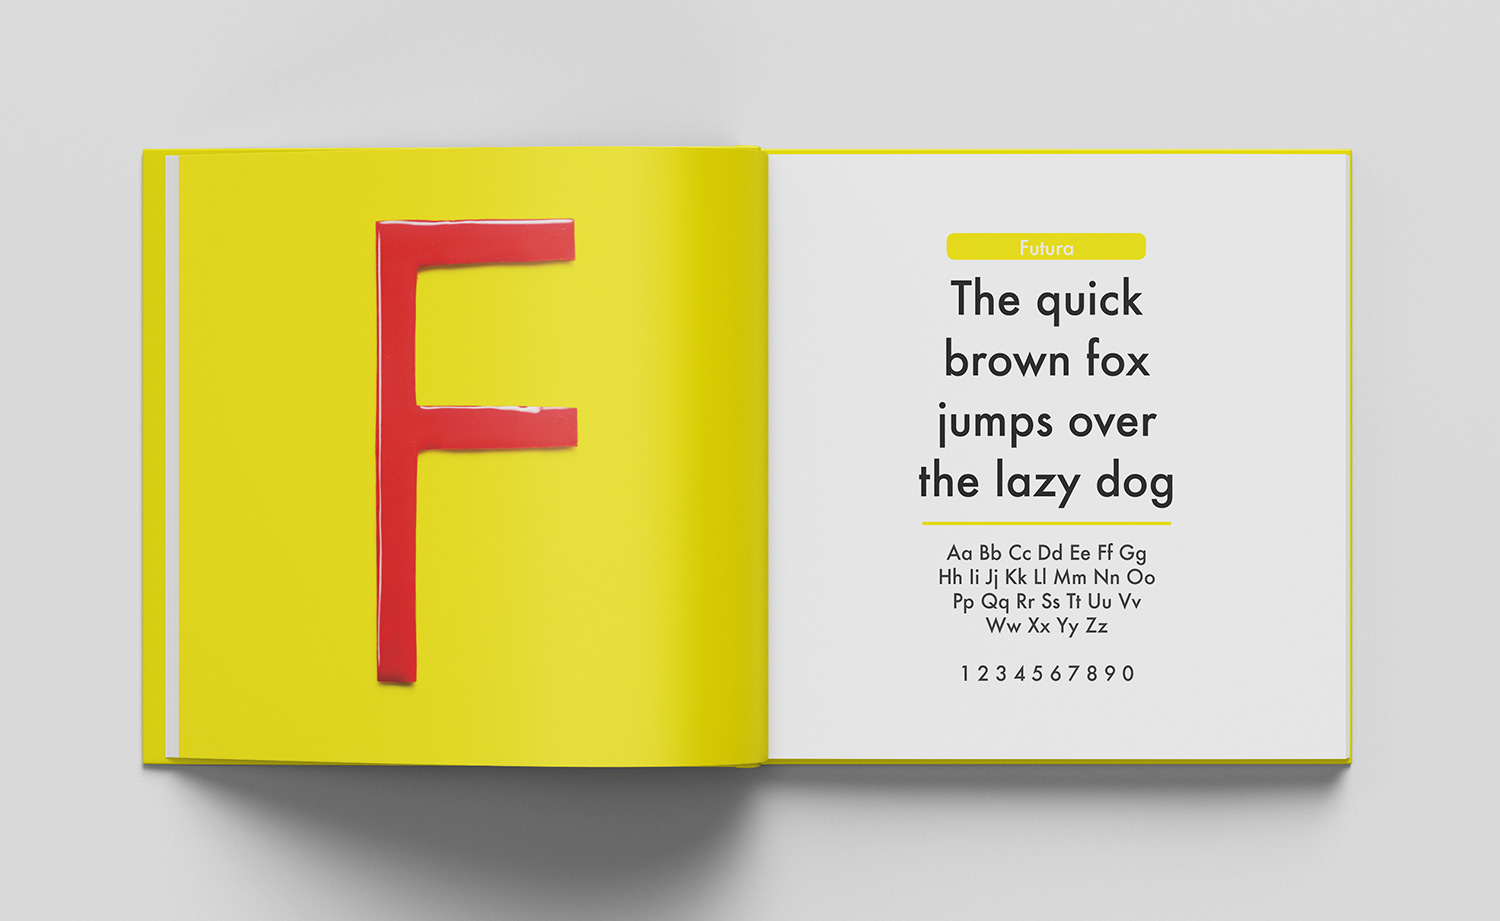 ABC of typography book spread letter F made from shiny red plastic on yellow surface